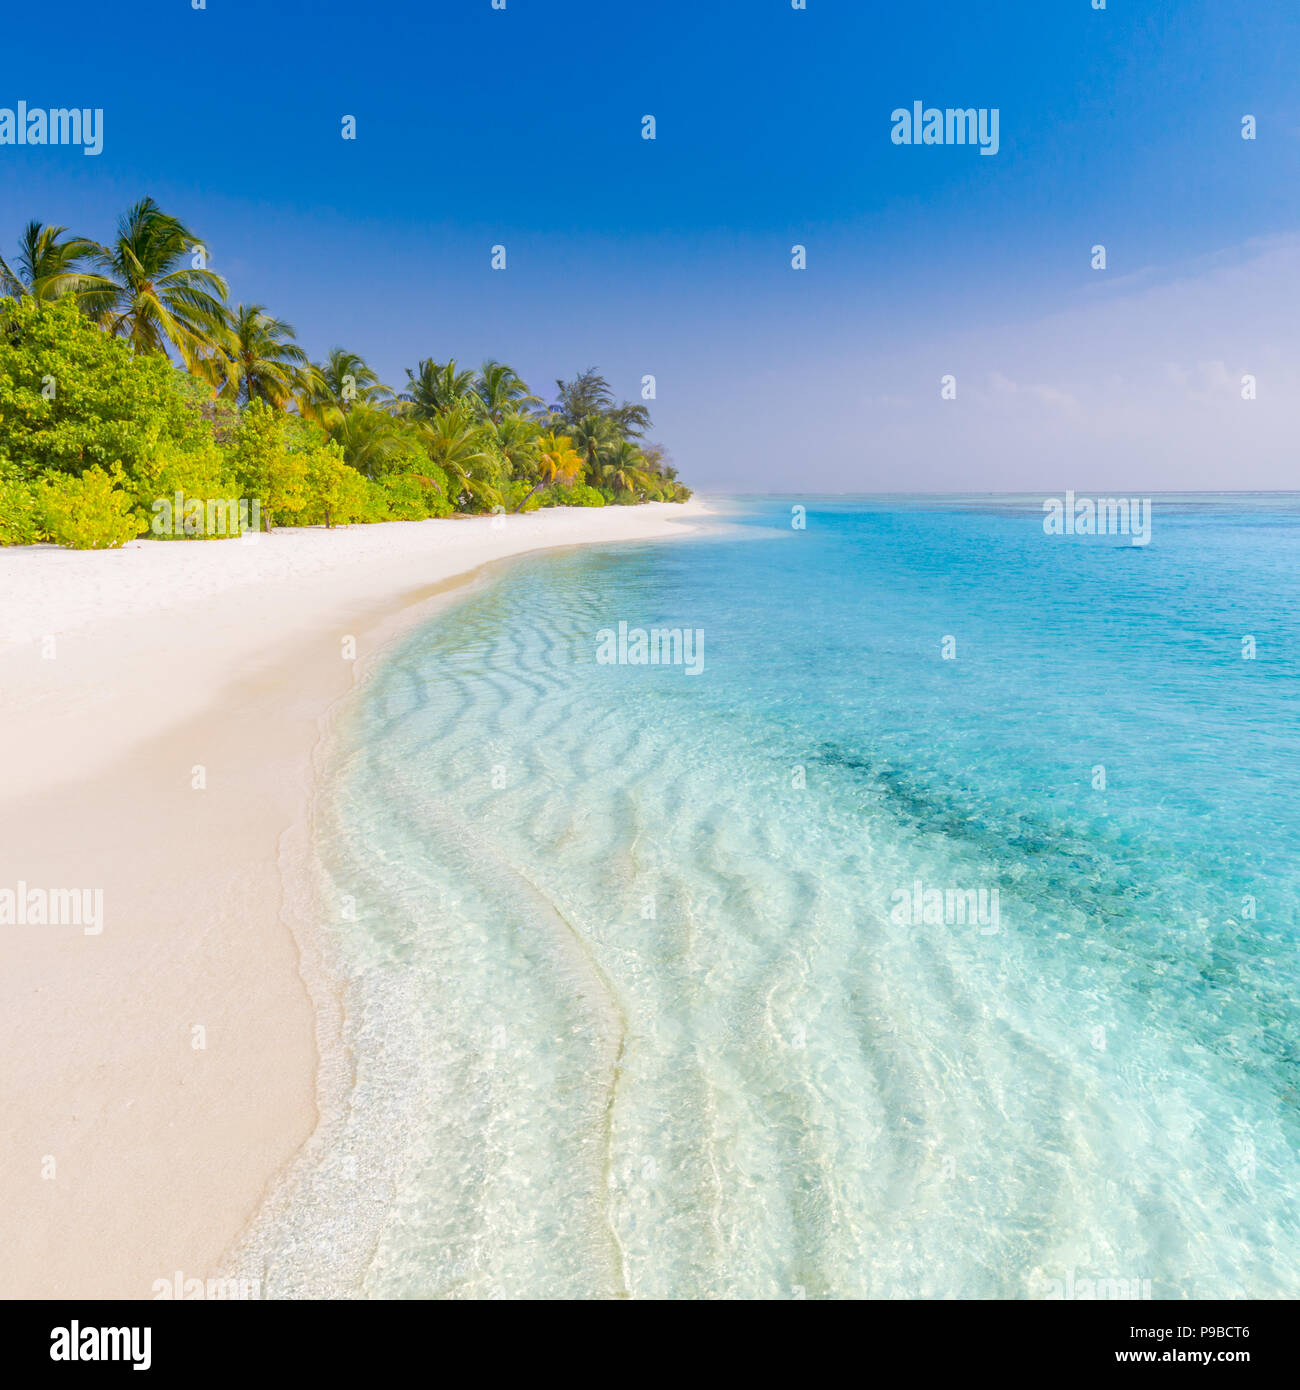 Tranquil beach banner. Palm trees and amazing blue sea view with white sand - Stock Image